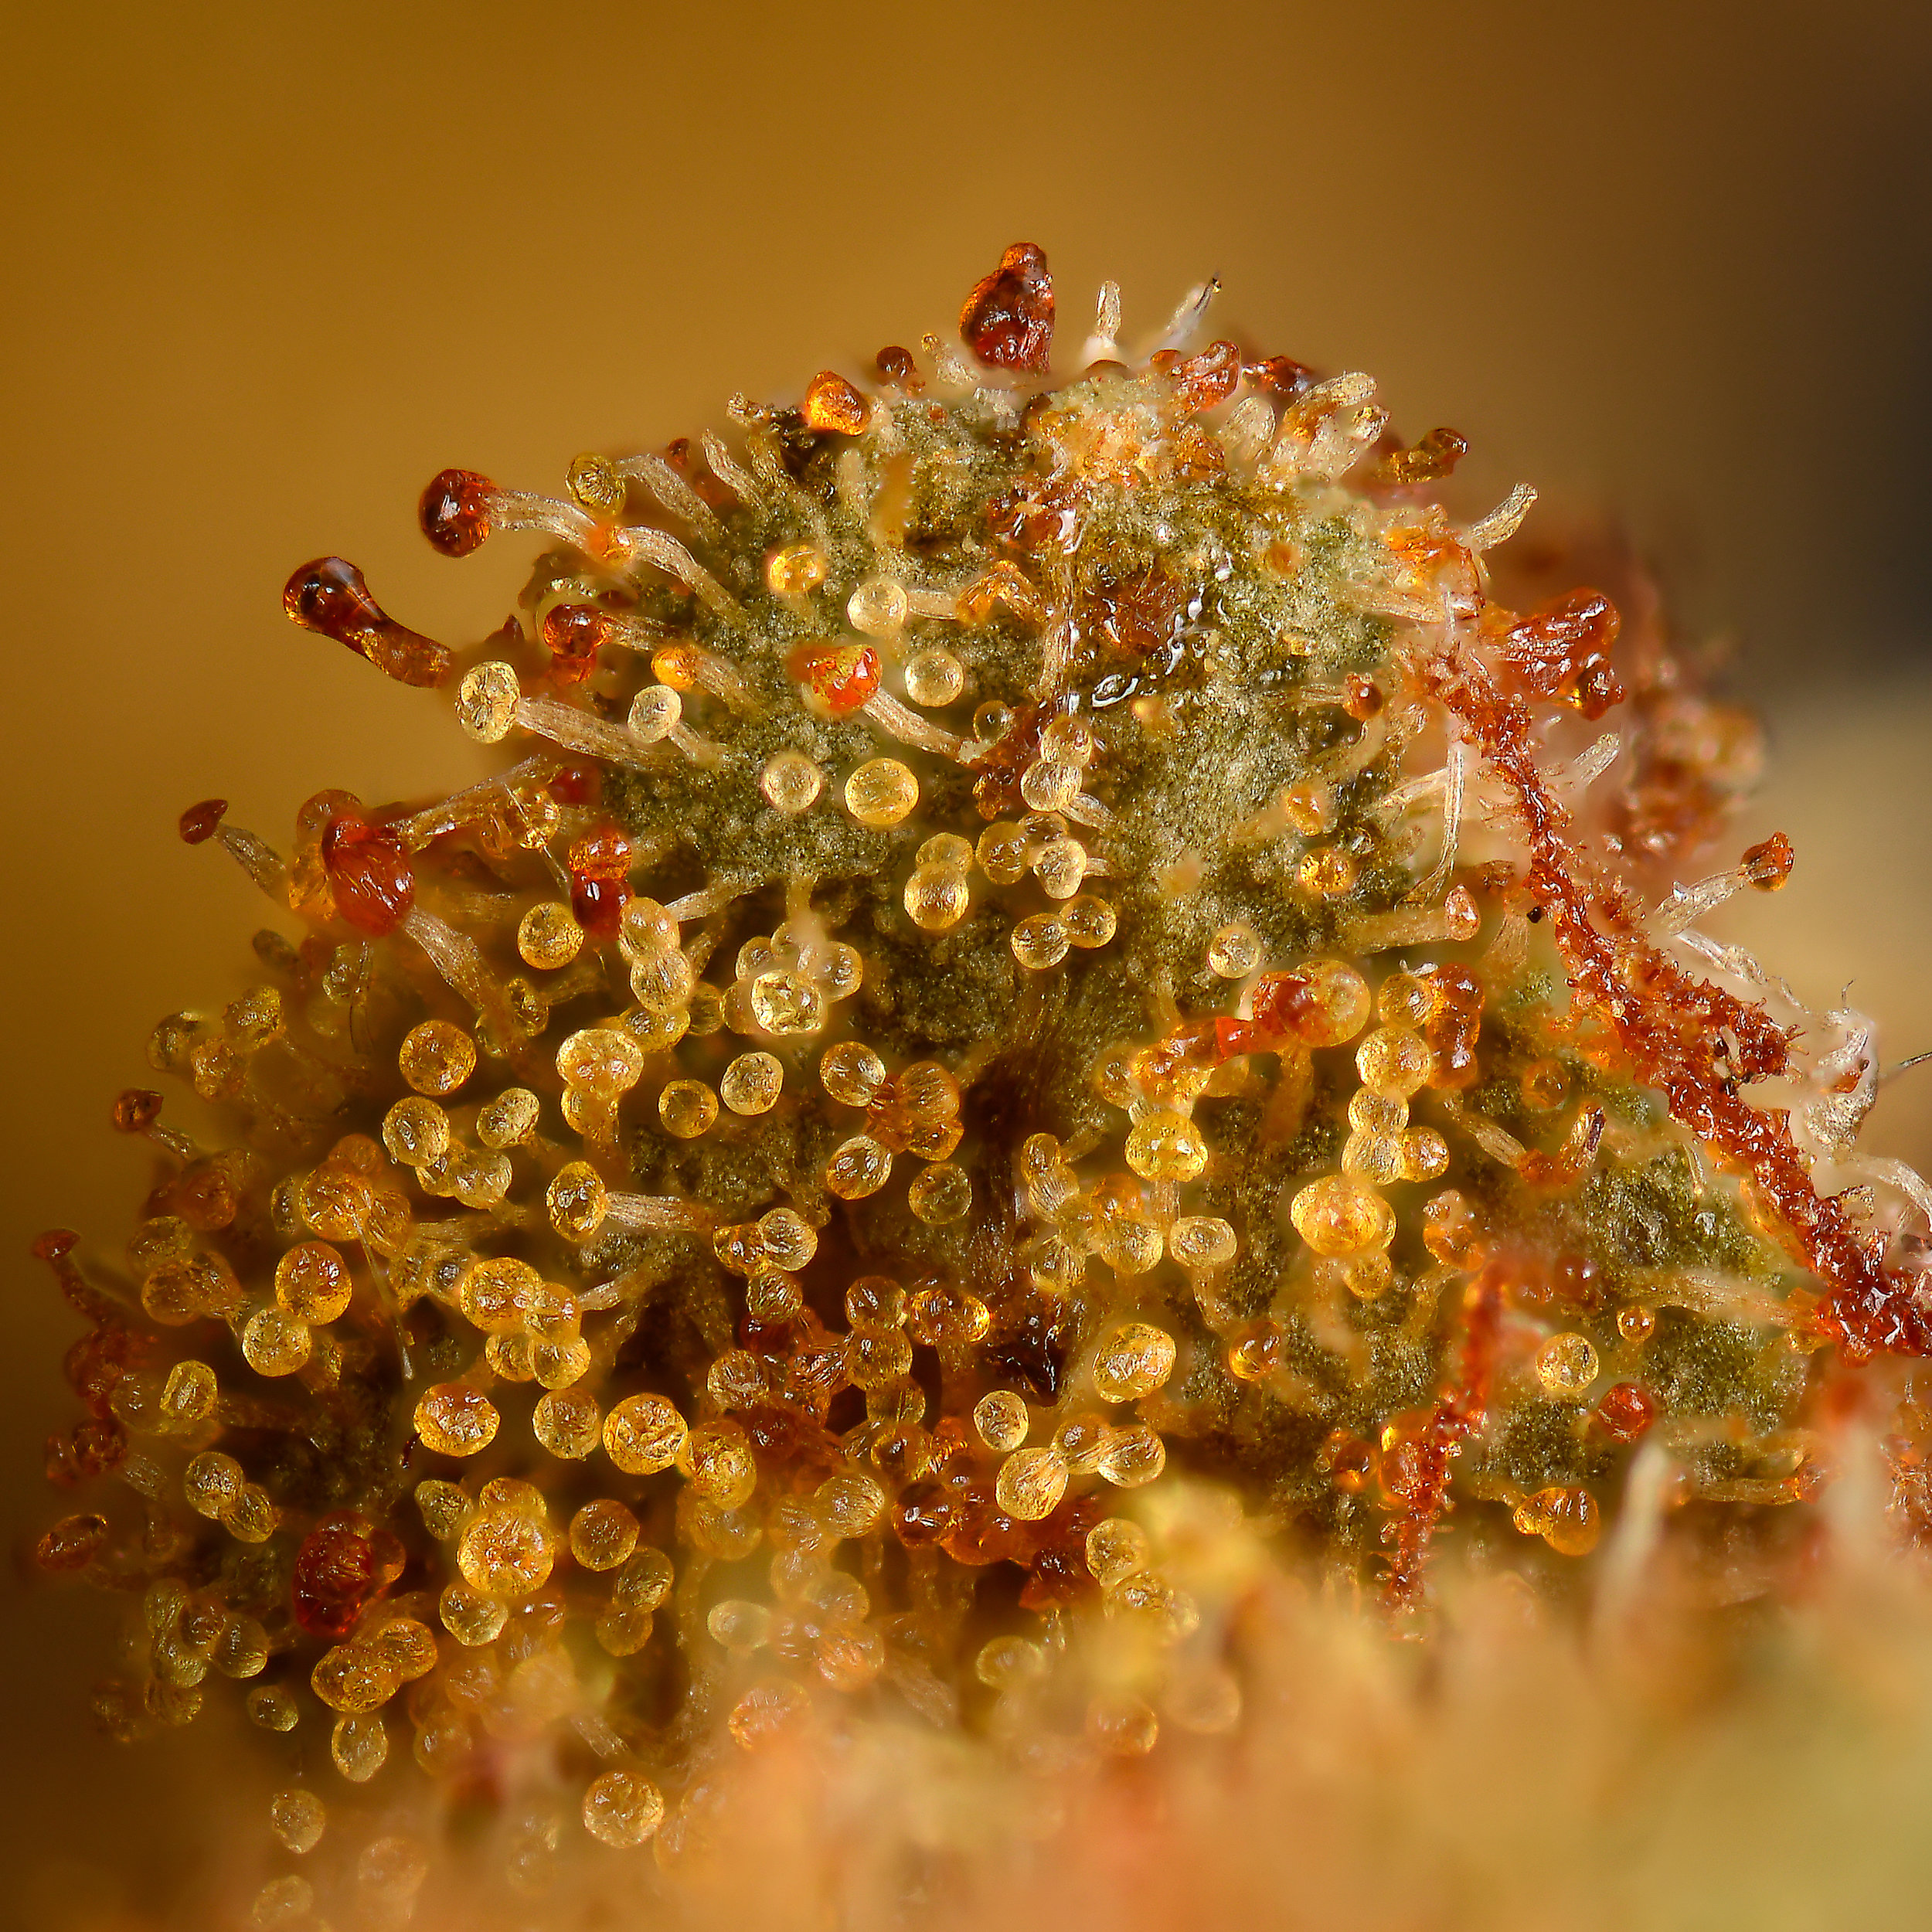 Sanniesjack 12 year old bud with orange trichomes